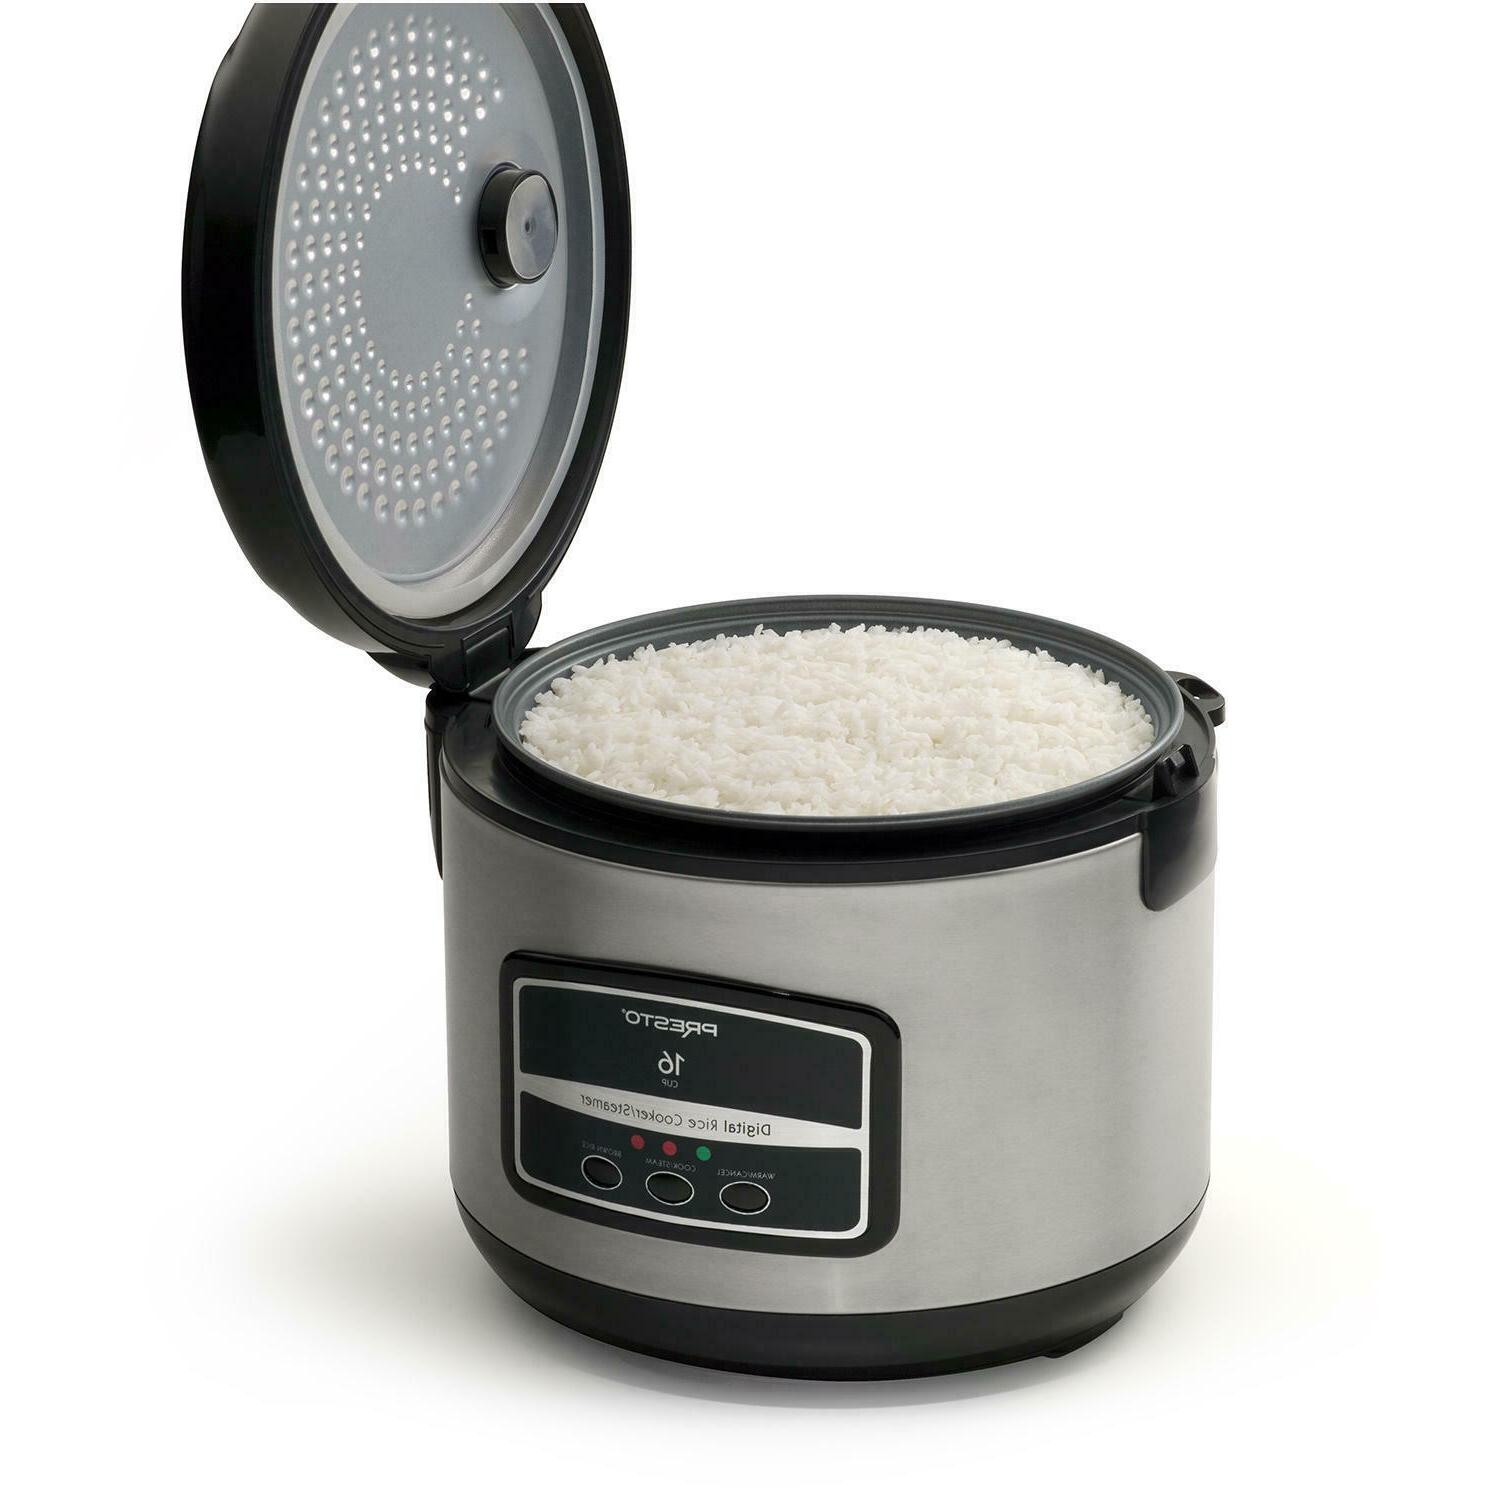 rice cooker steamer 16cup stainless steel rice